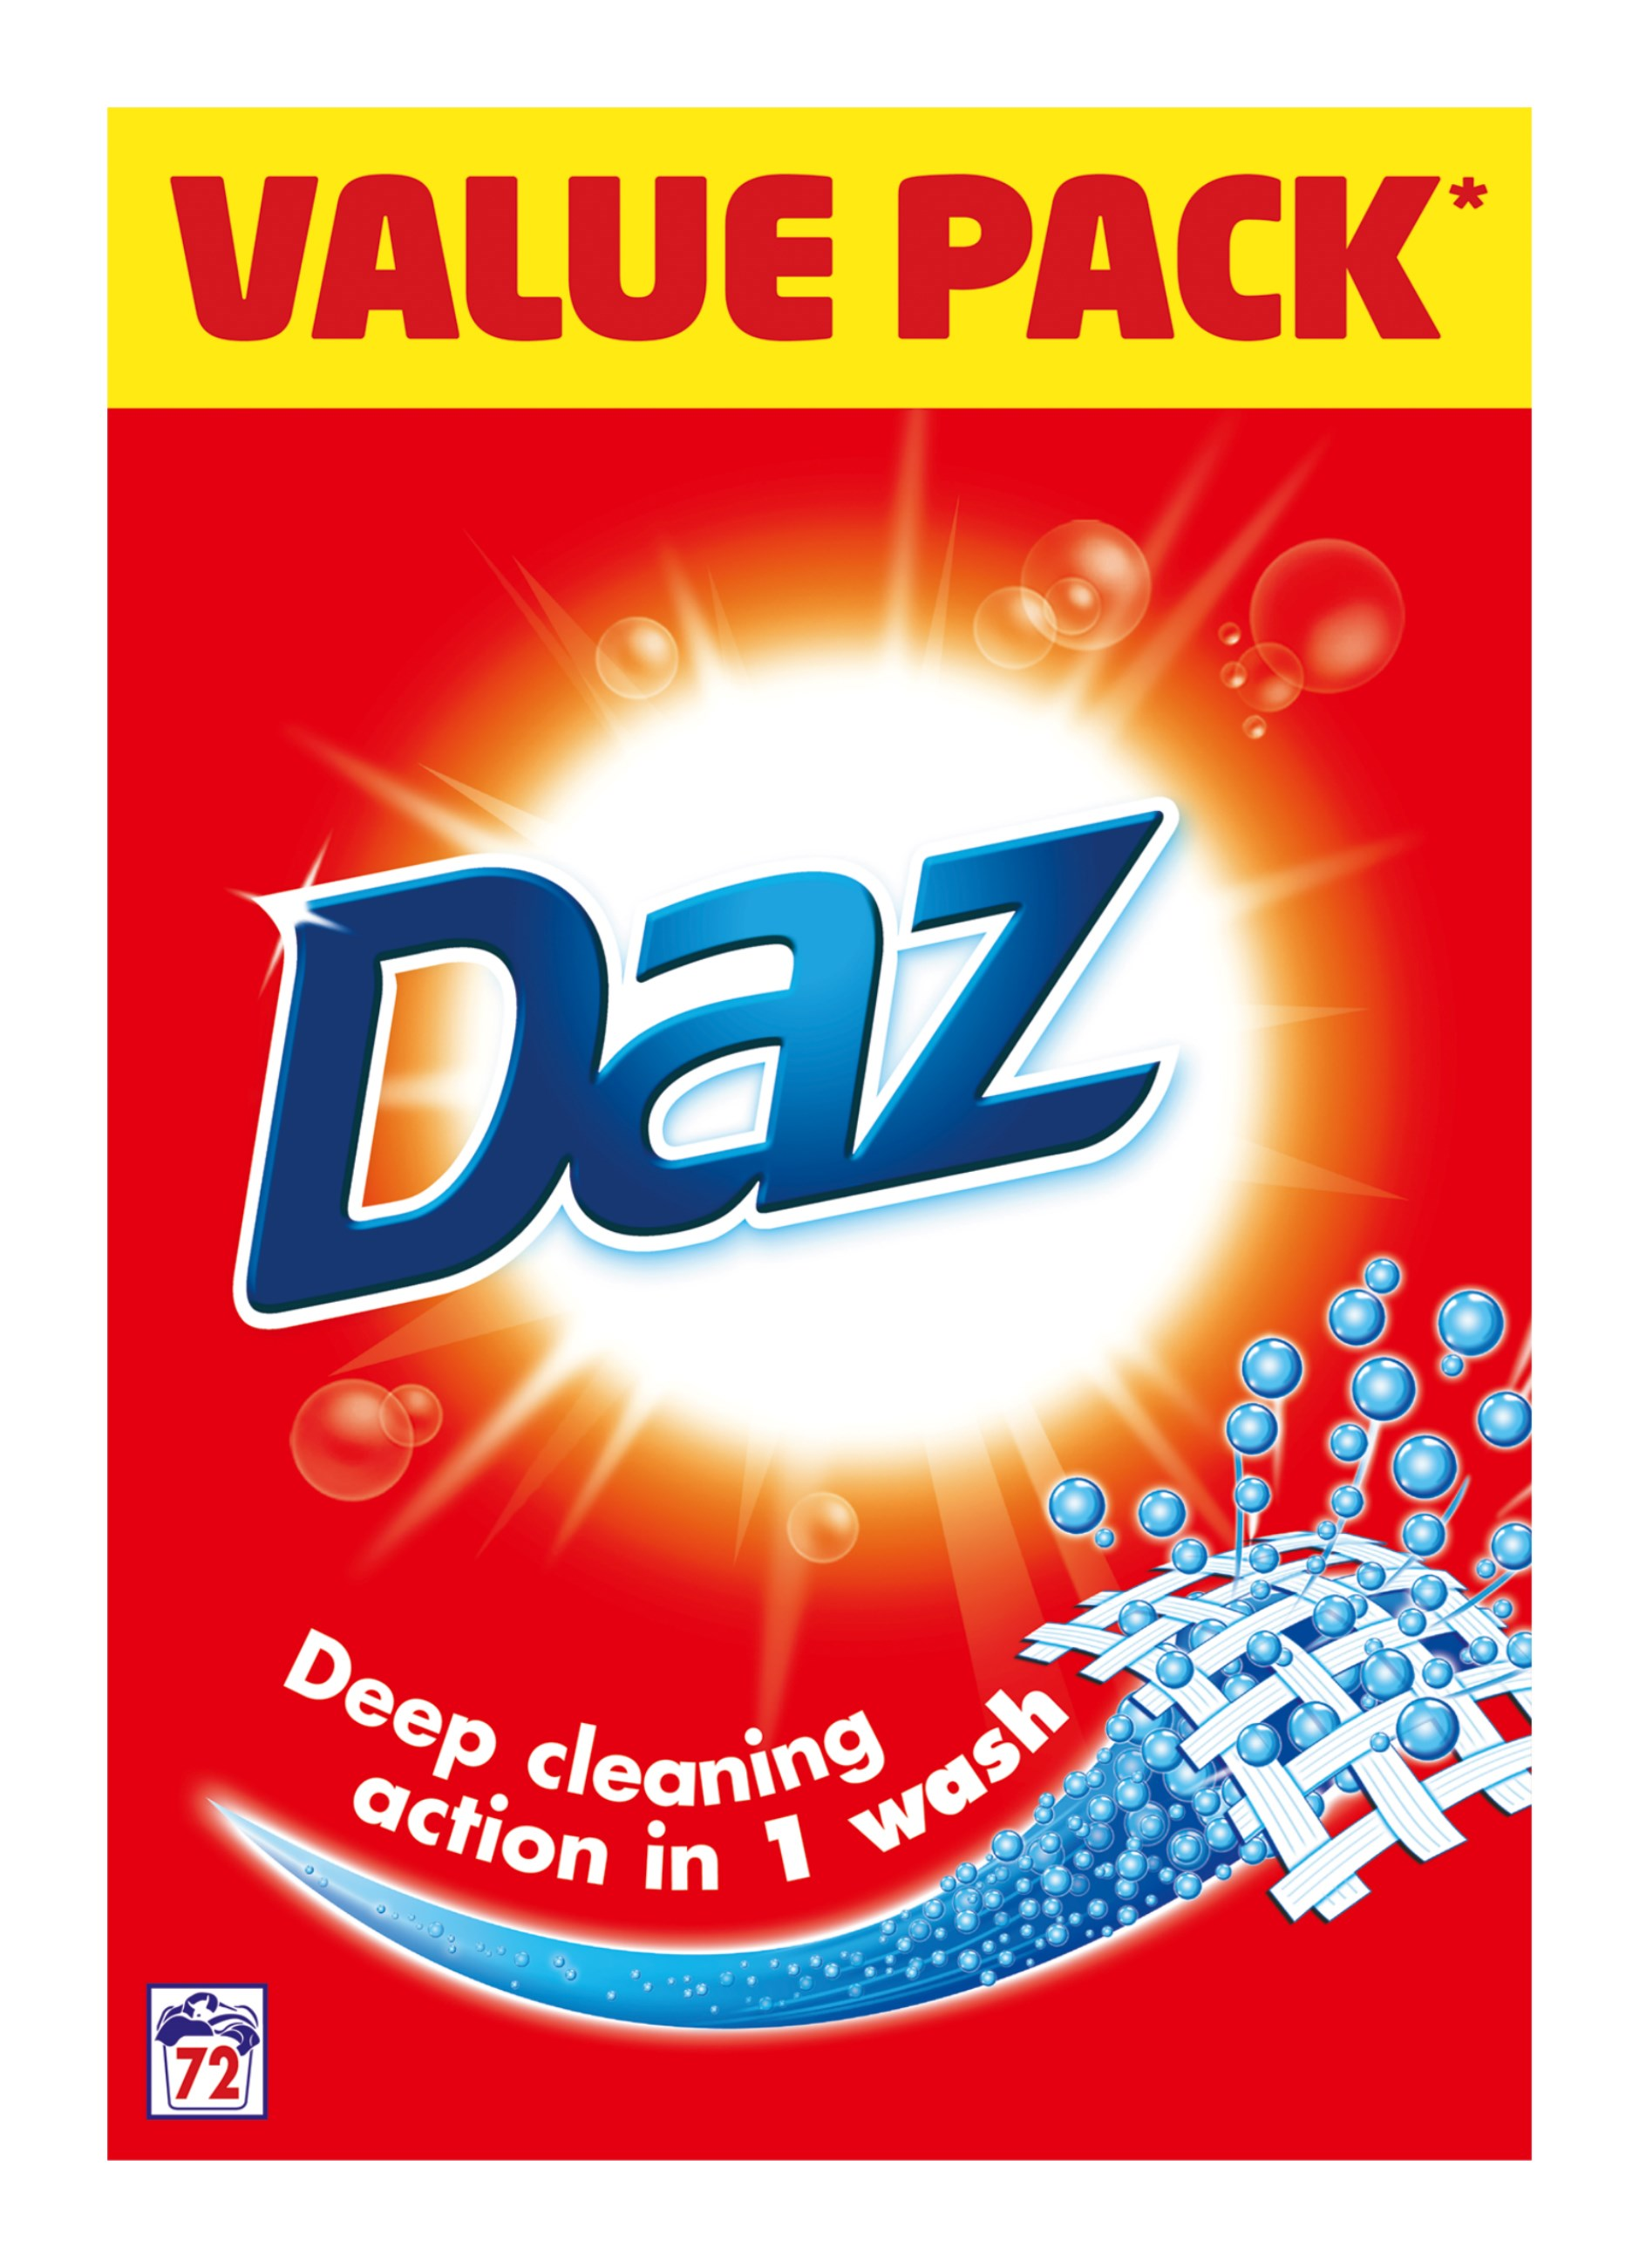 Daz Professional Washing Powder 72 Washes Laundry